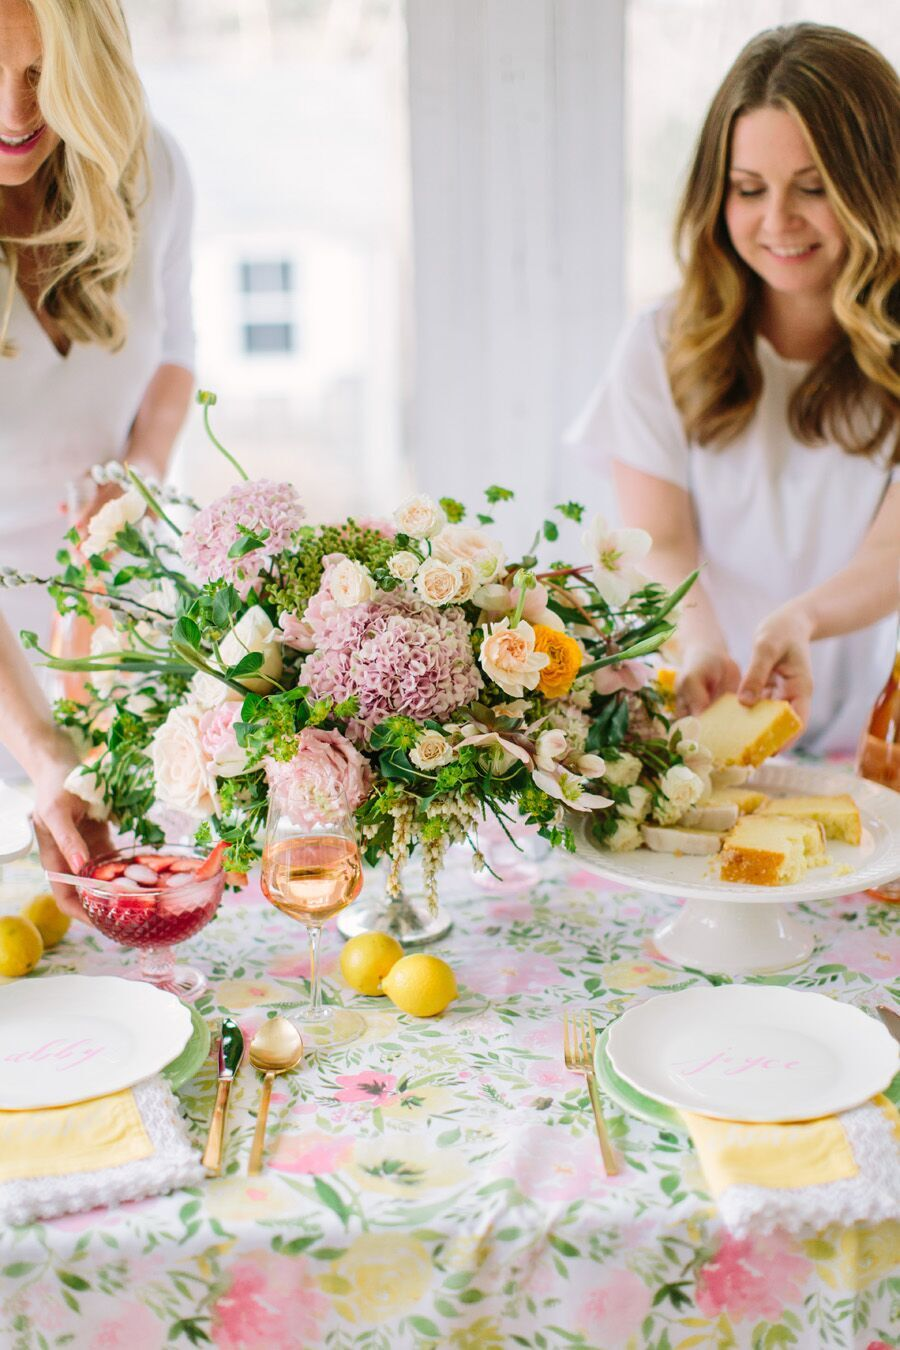 Hosting the Perfect Bridal Shower